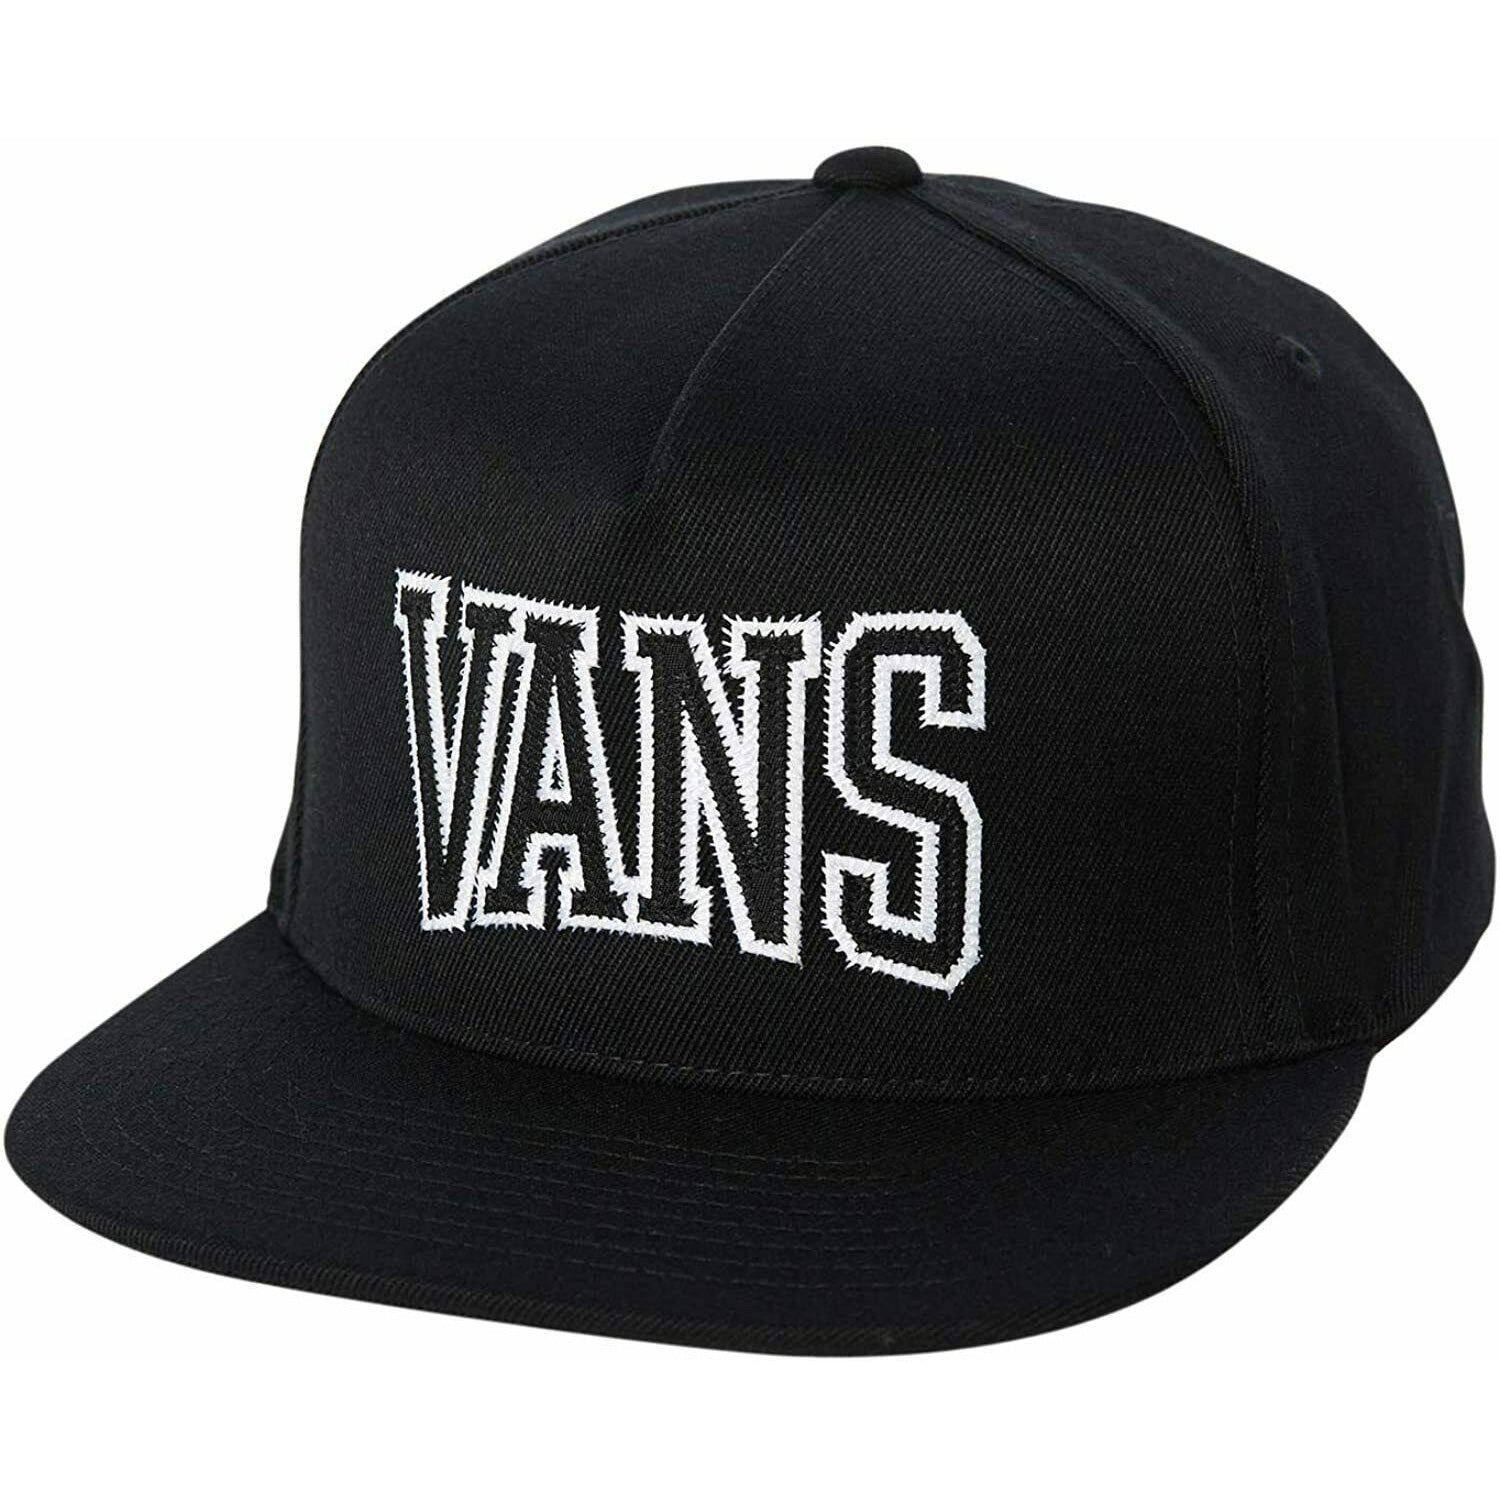 Vans SVD University Hat Black/White